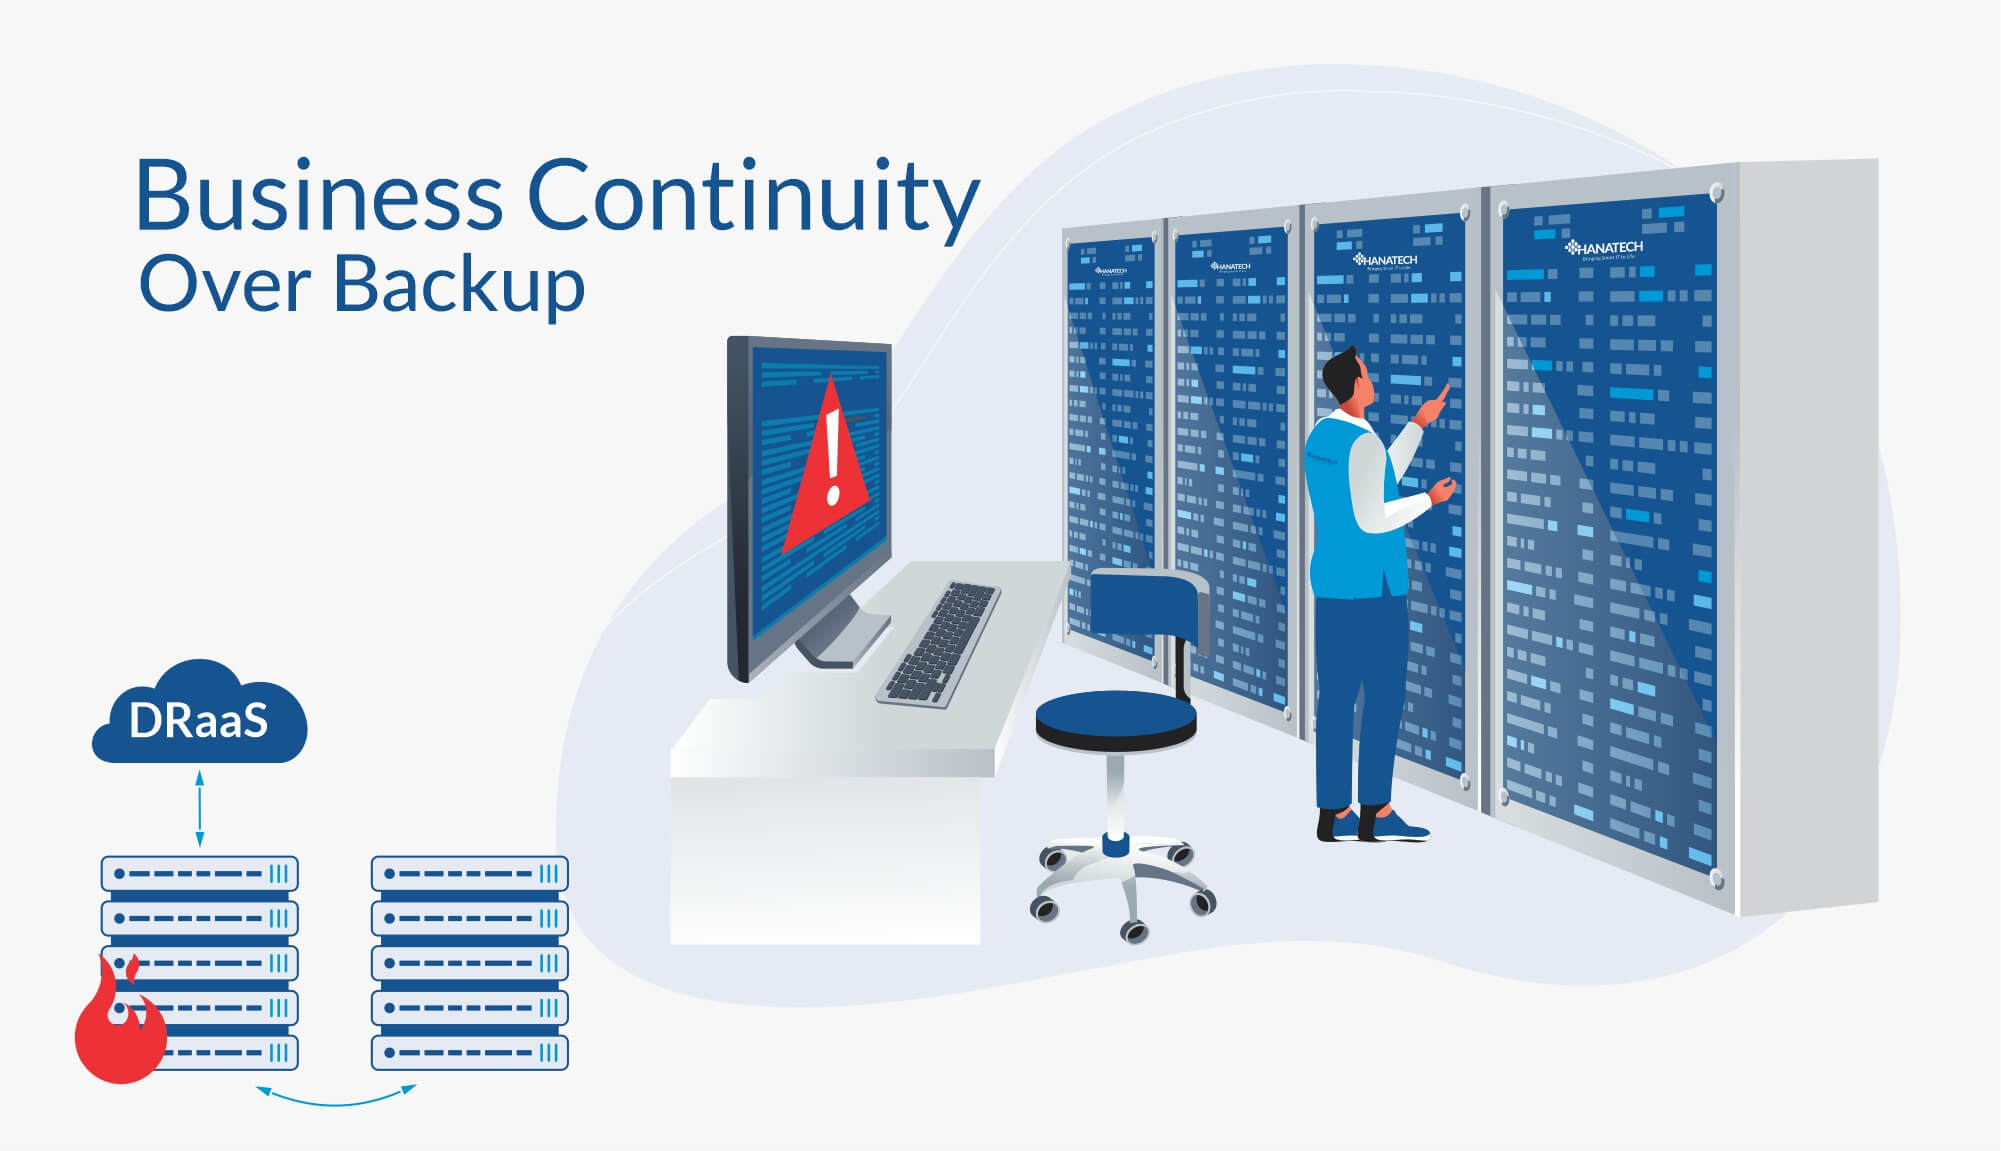 Business Continuity Over Backup-DRaaS